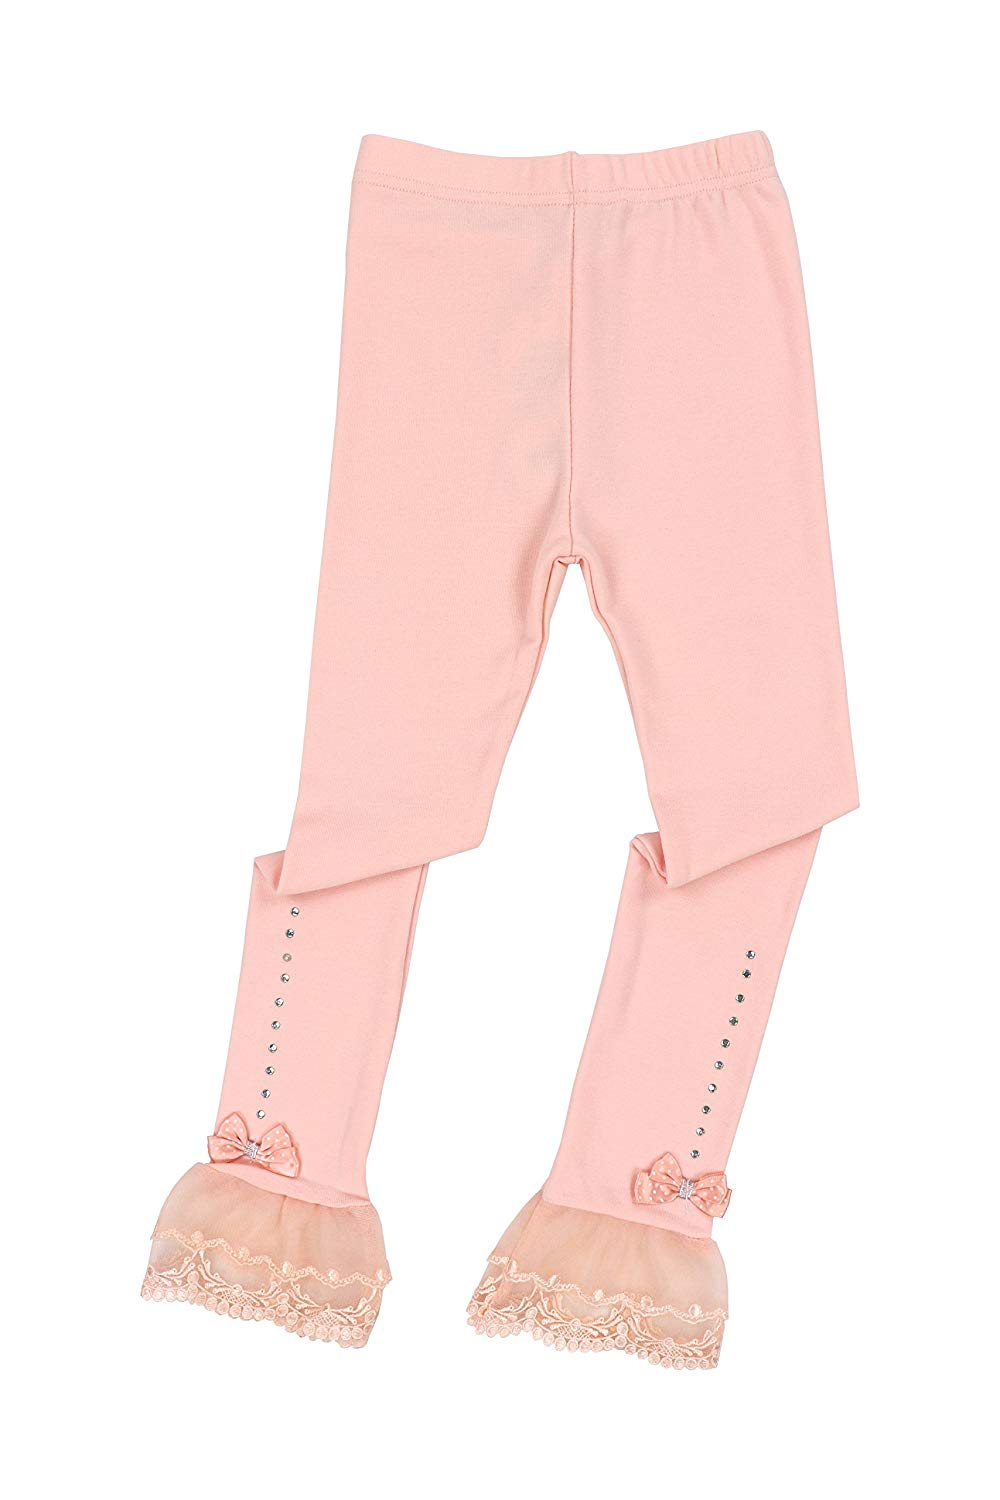 60eb4e5d5abe08 Get Quotations · Toddler Girls Pants Little Girls' Solid-Leggings Pink  Bowknot Lace